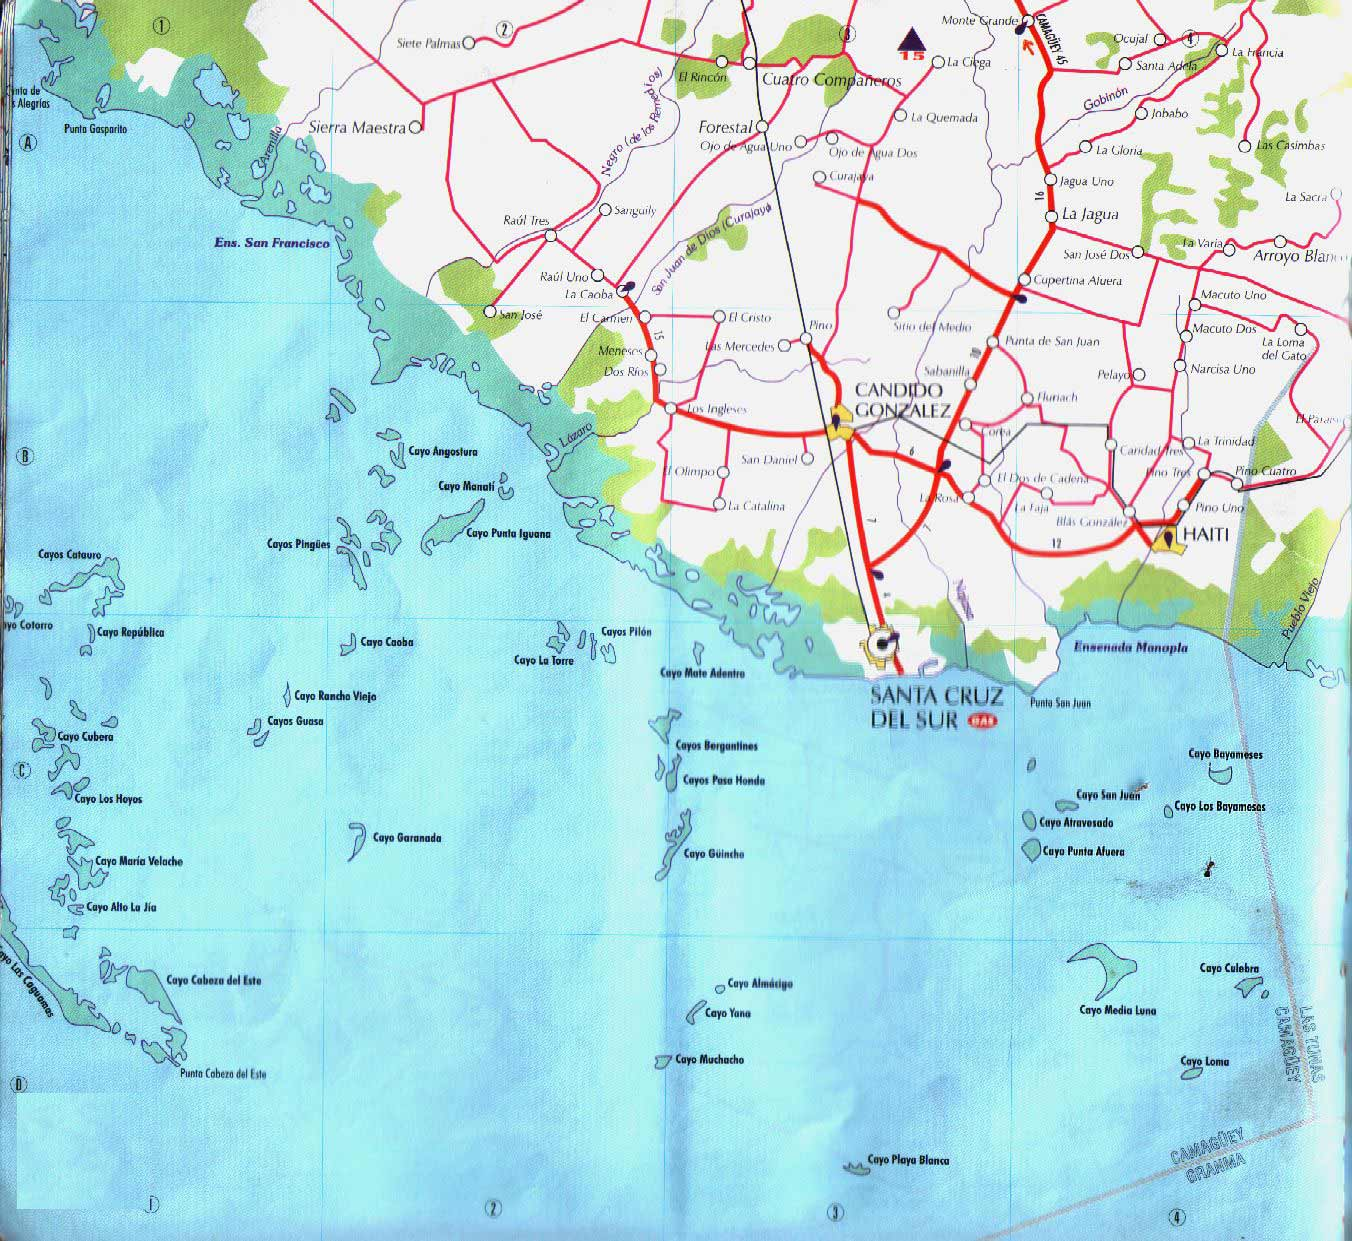 Map of Santa Cruz Del Sur Candido Gonzalez large map